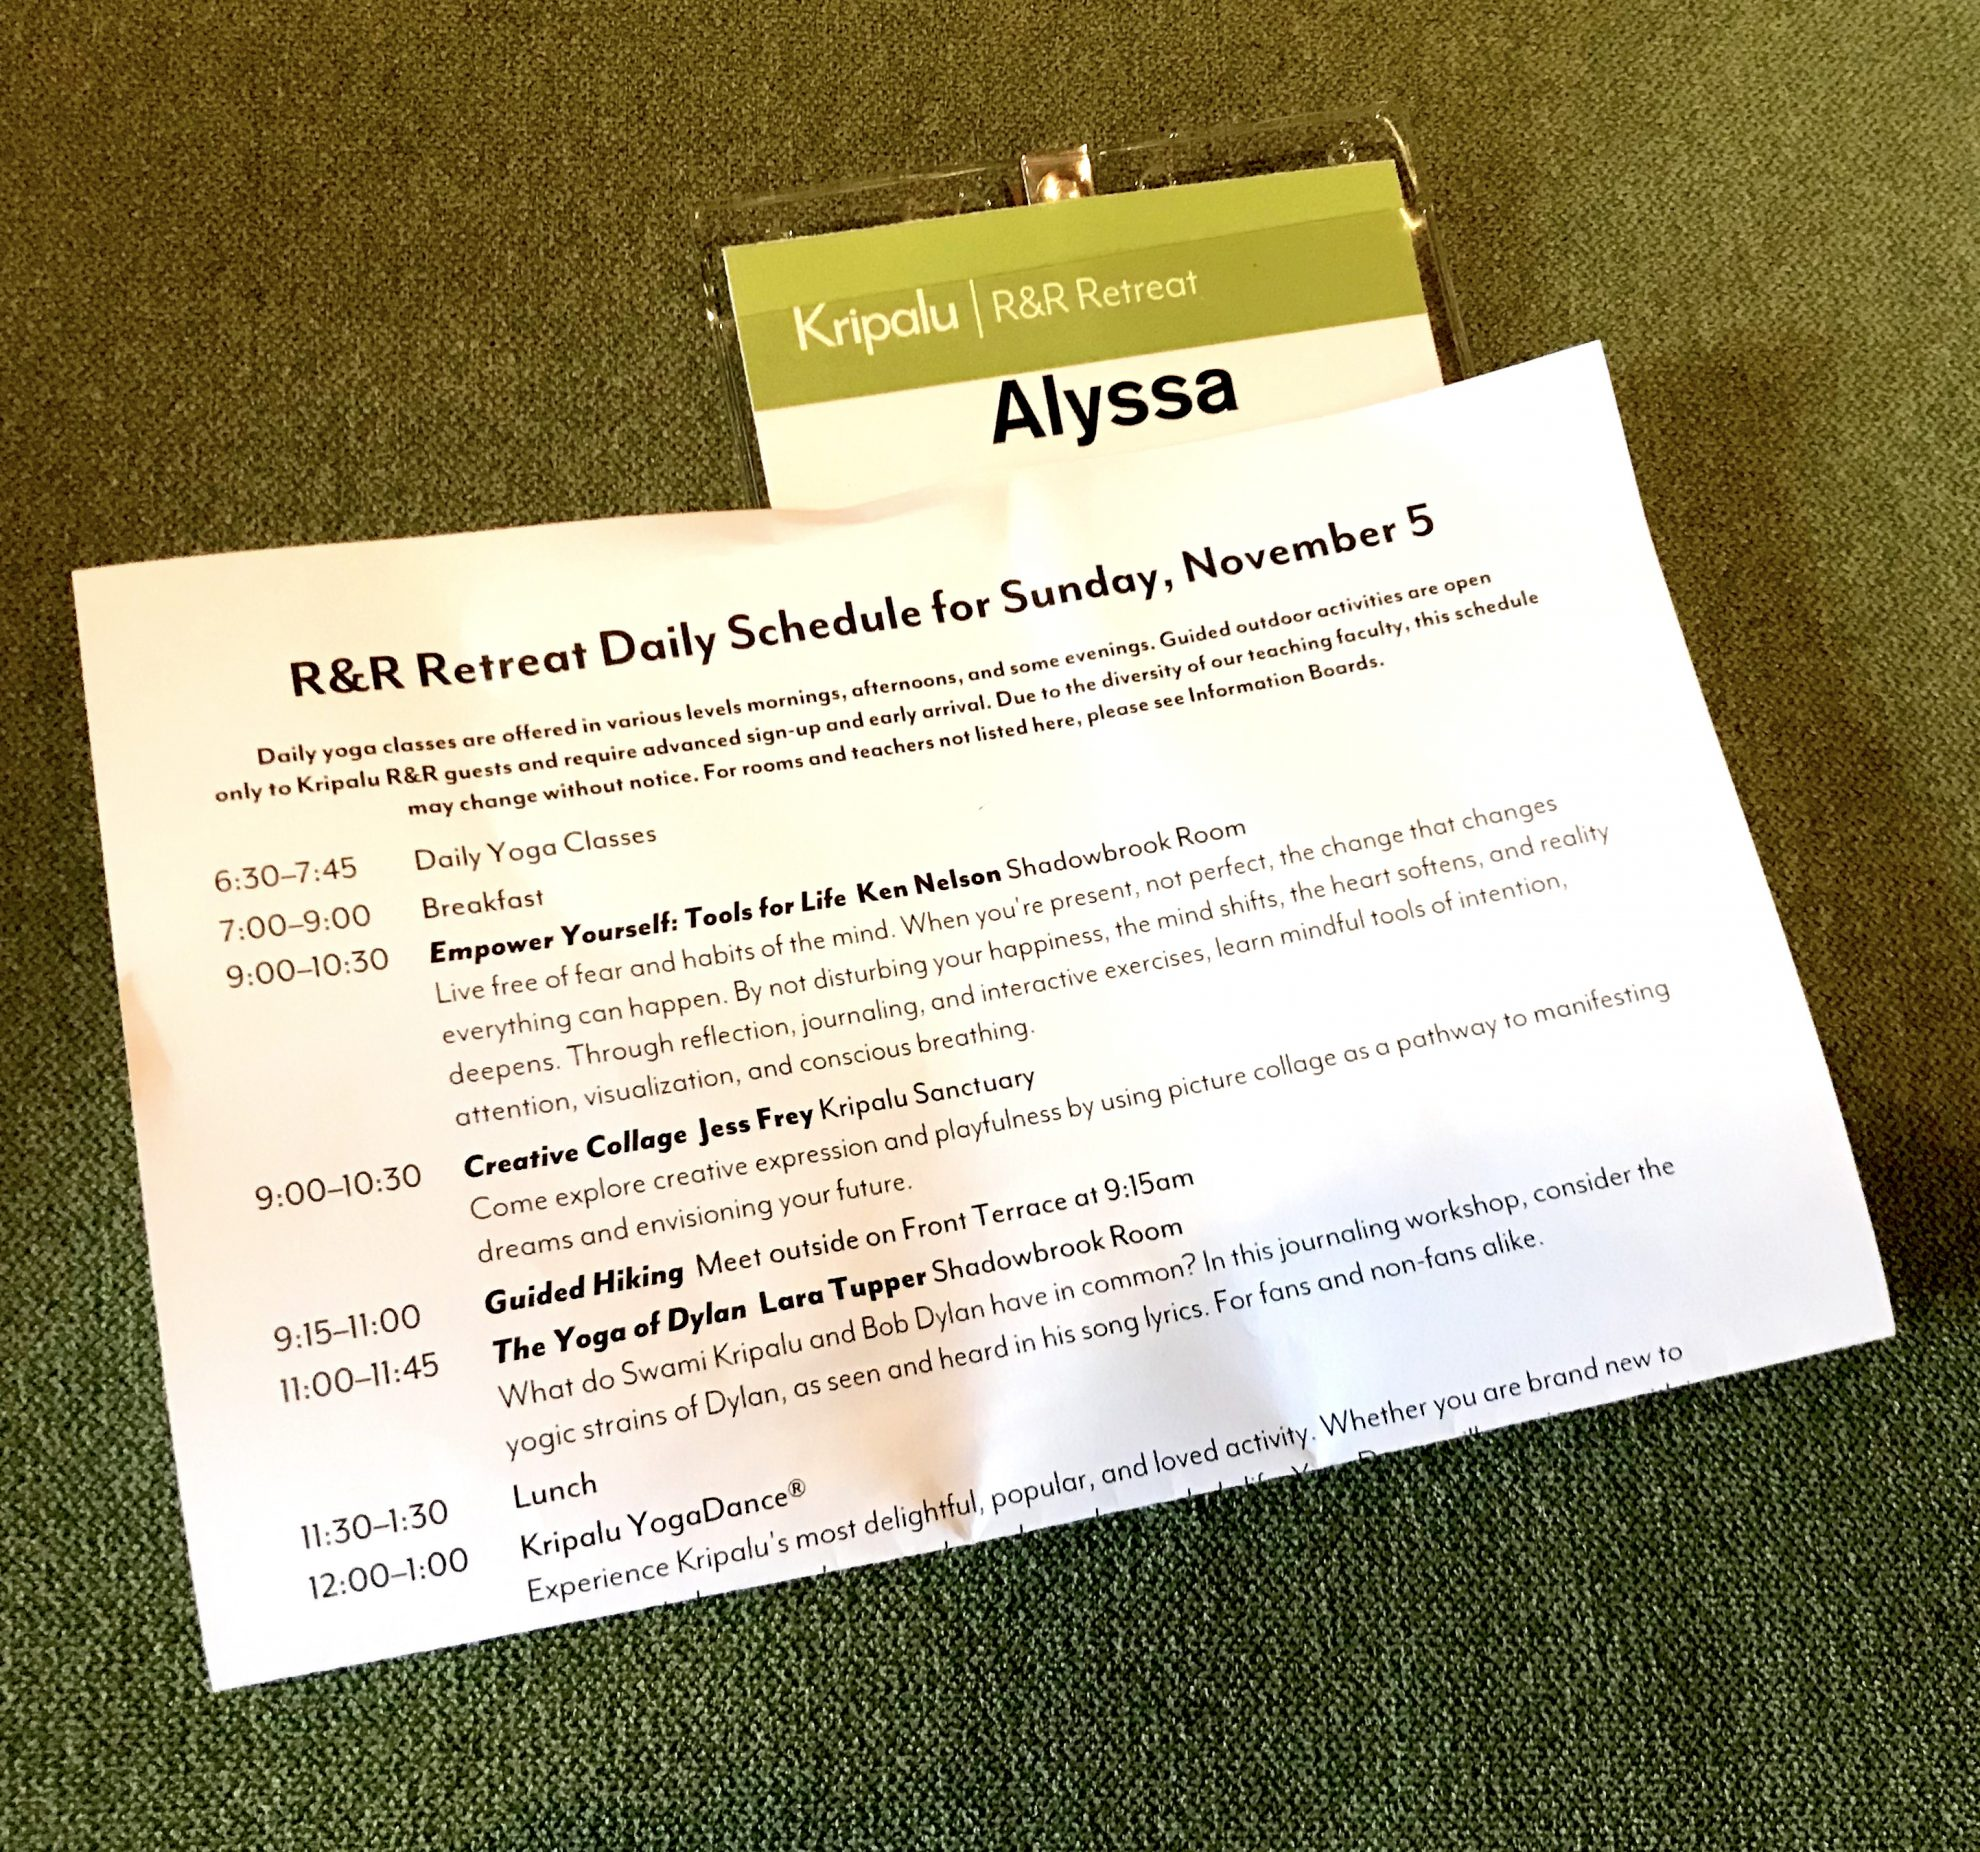 Sample schedule for Kripalu day pass at Kripalu Center for Yoga and Health